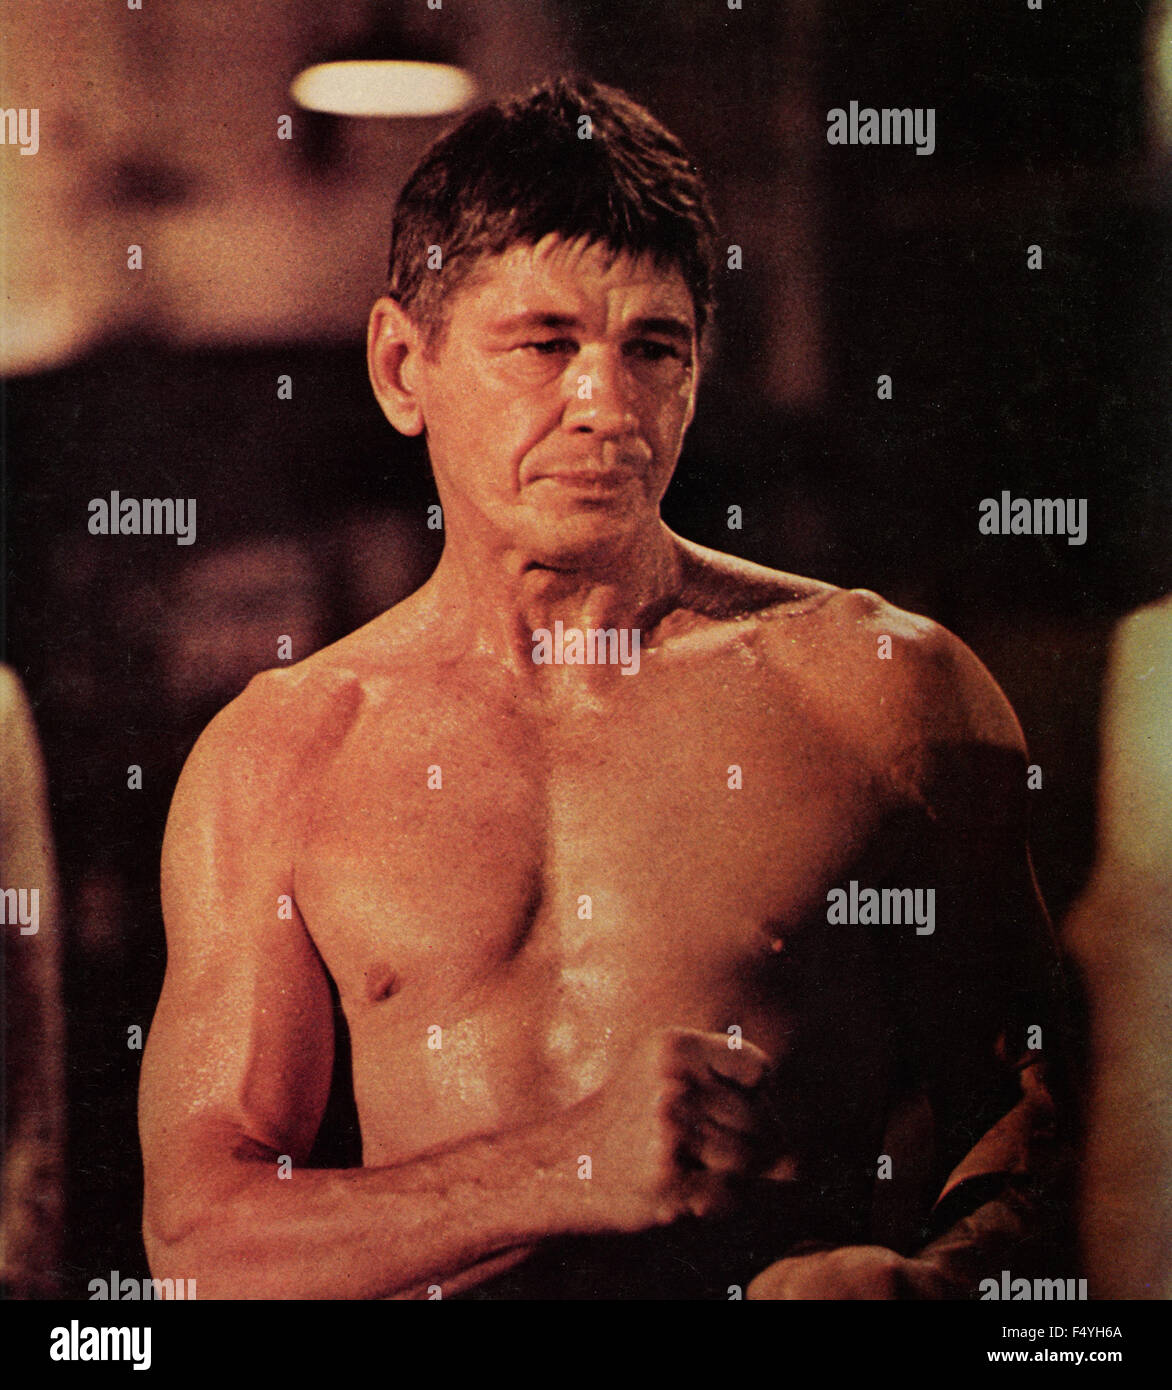 the american actor charles bronson in a scene from the